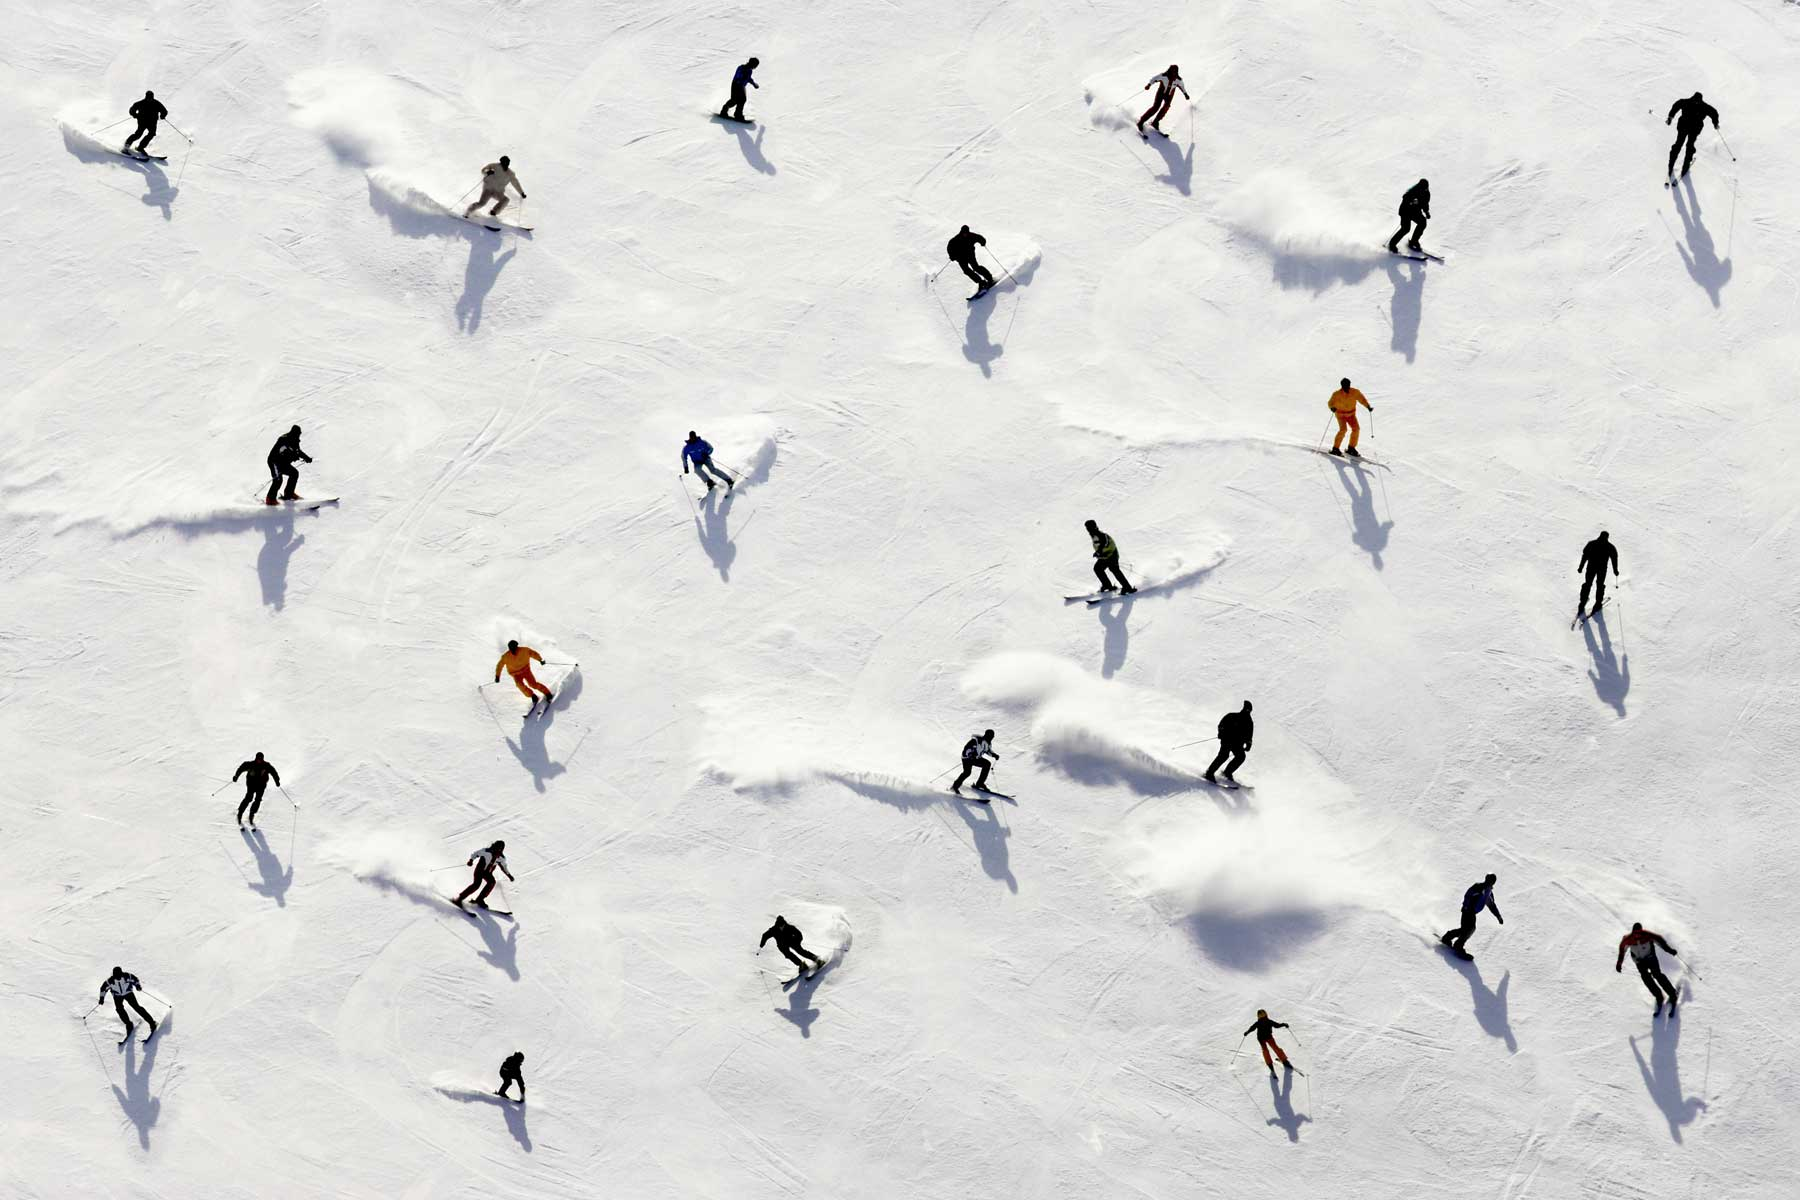 Aerial view of crowded ski slope